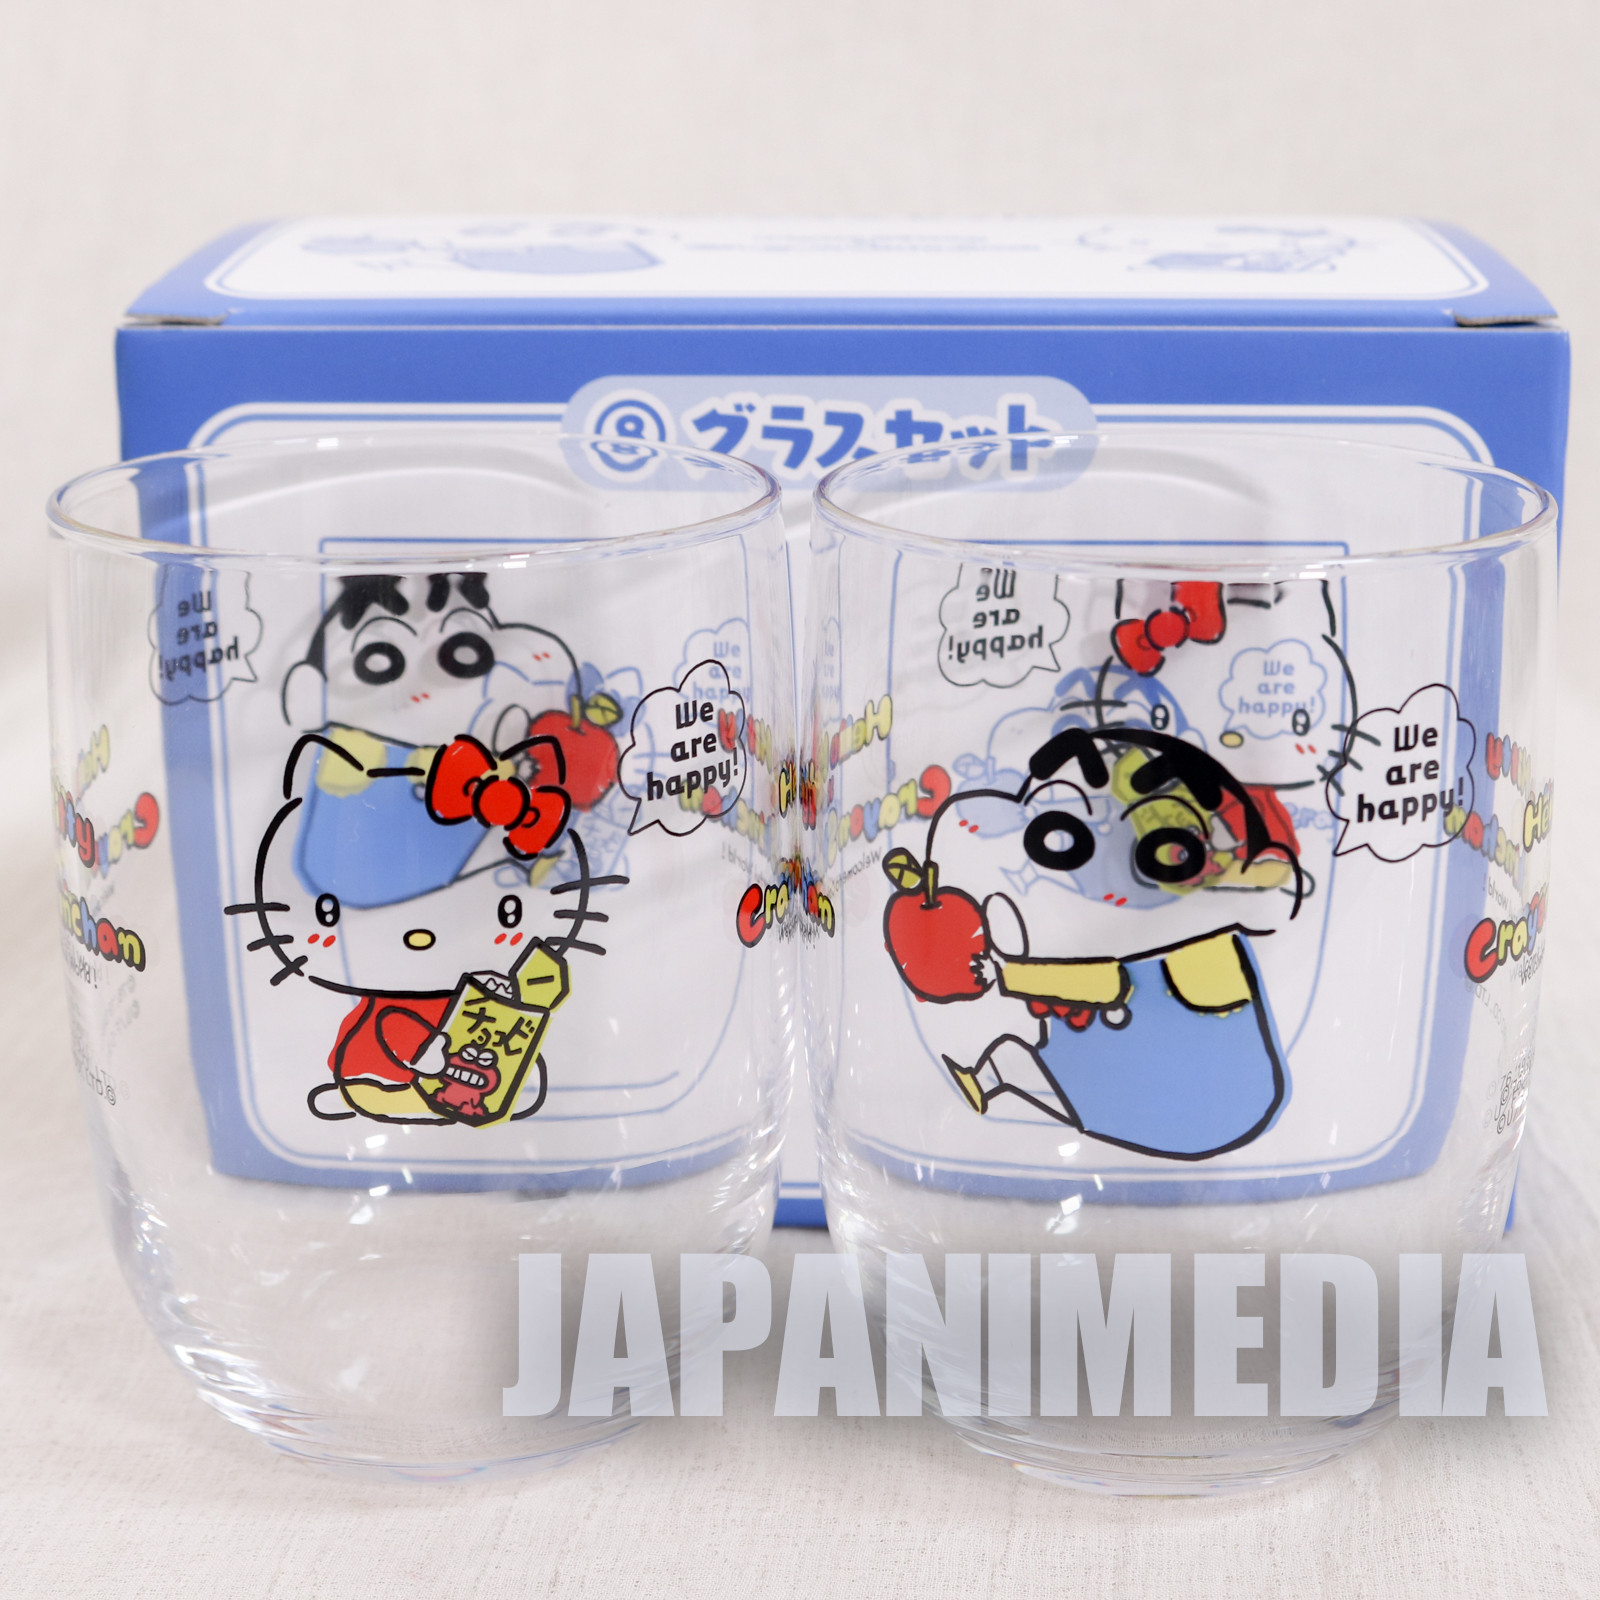 Crayon Shin-chan x Hello Kitty Glass 2pc Set Sanrio Smile JAPAN